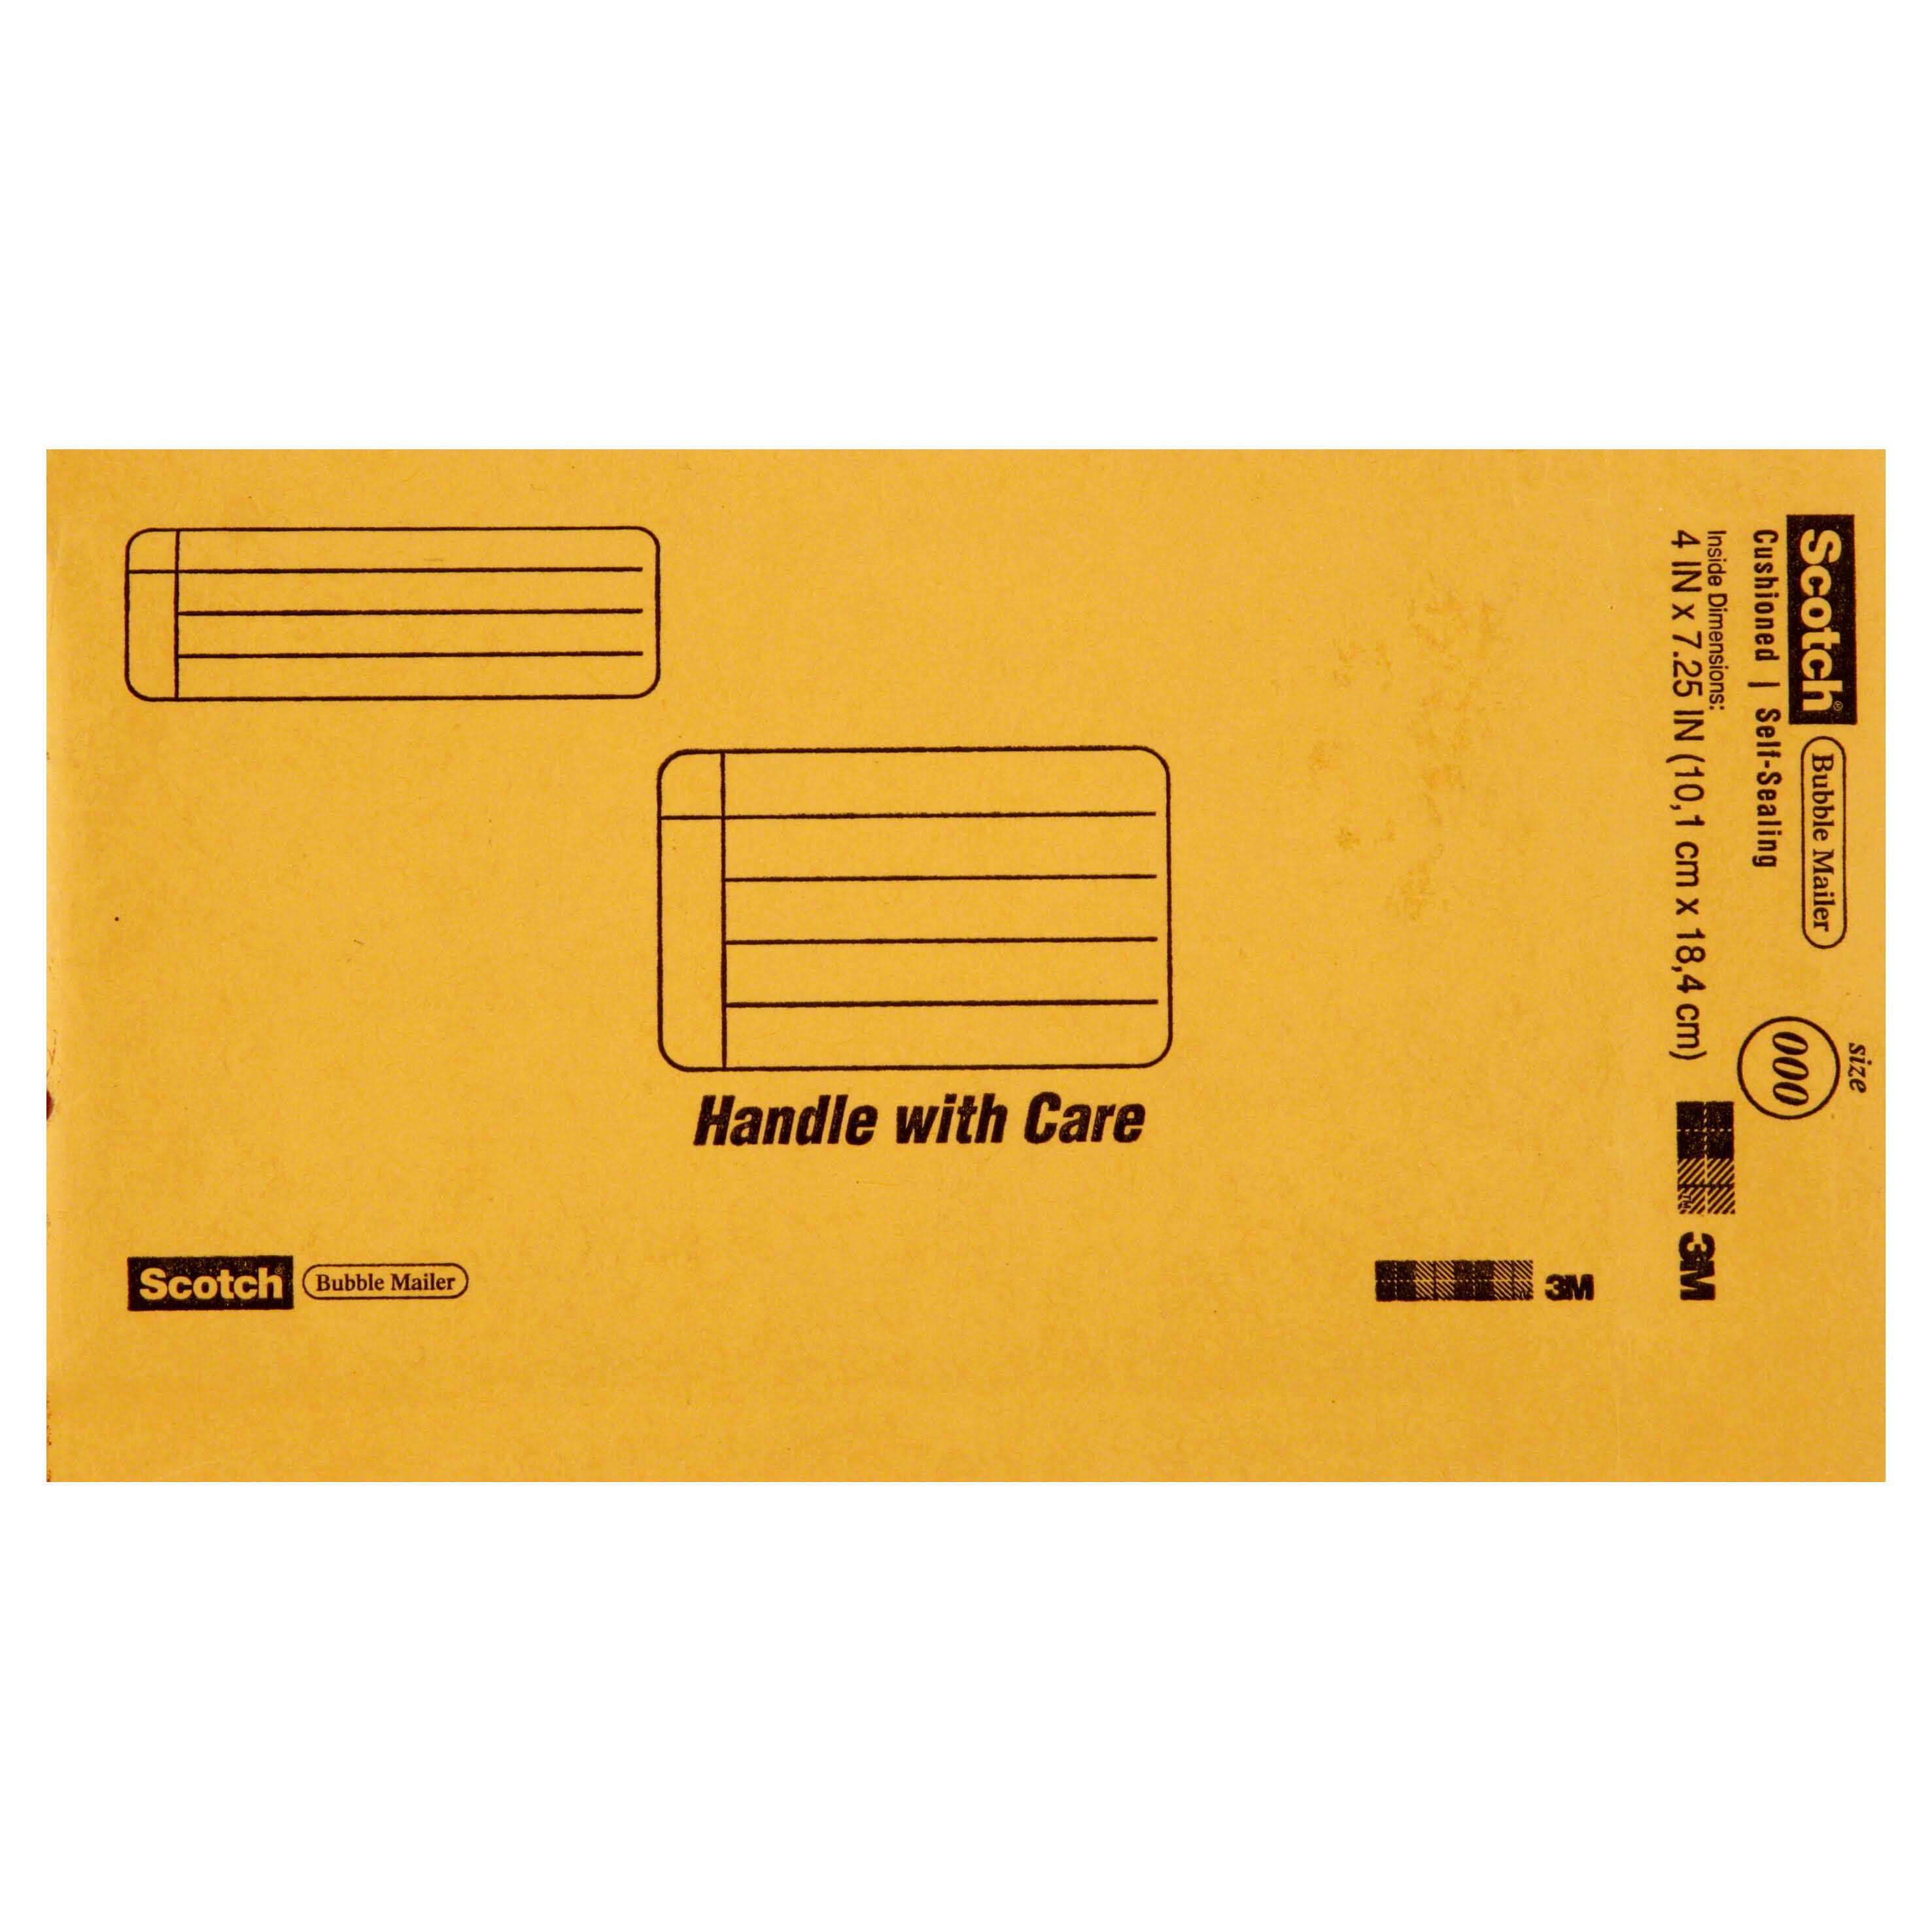 Scotch Bubble Mailer, Size 000